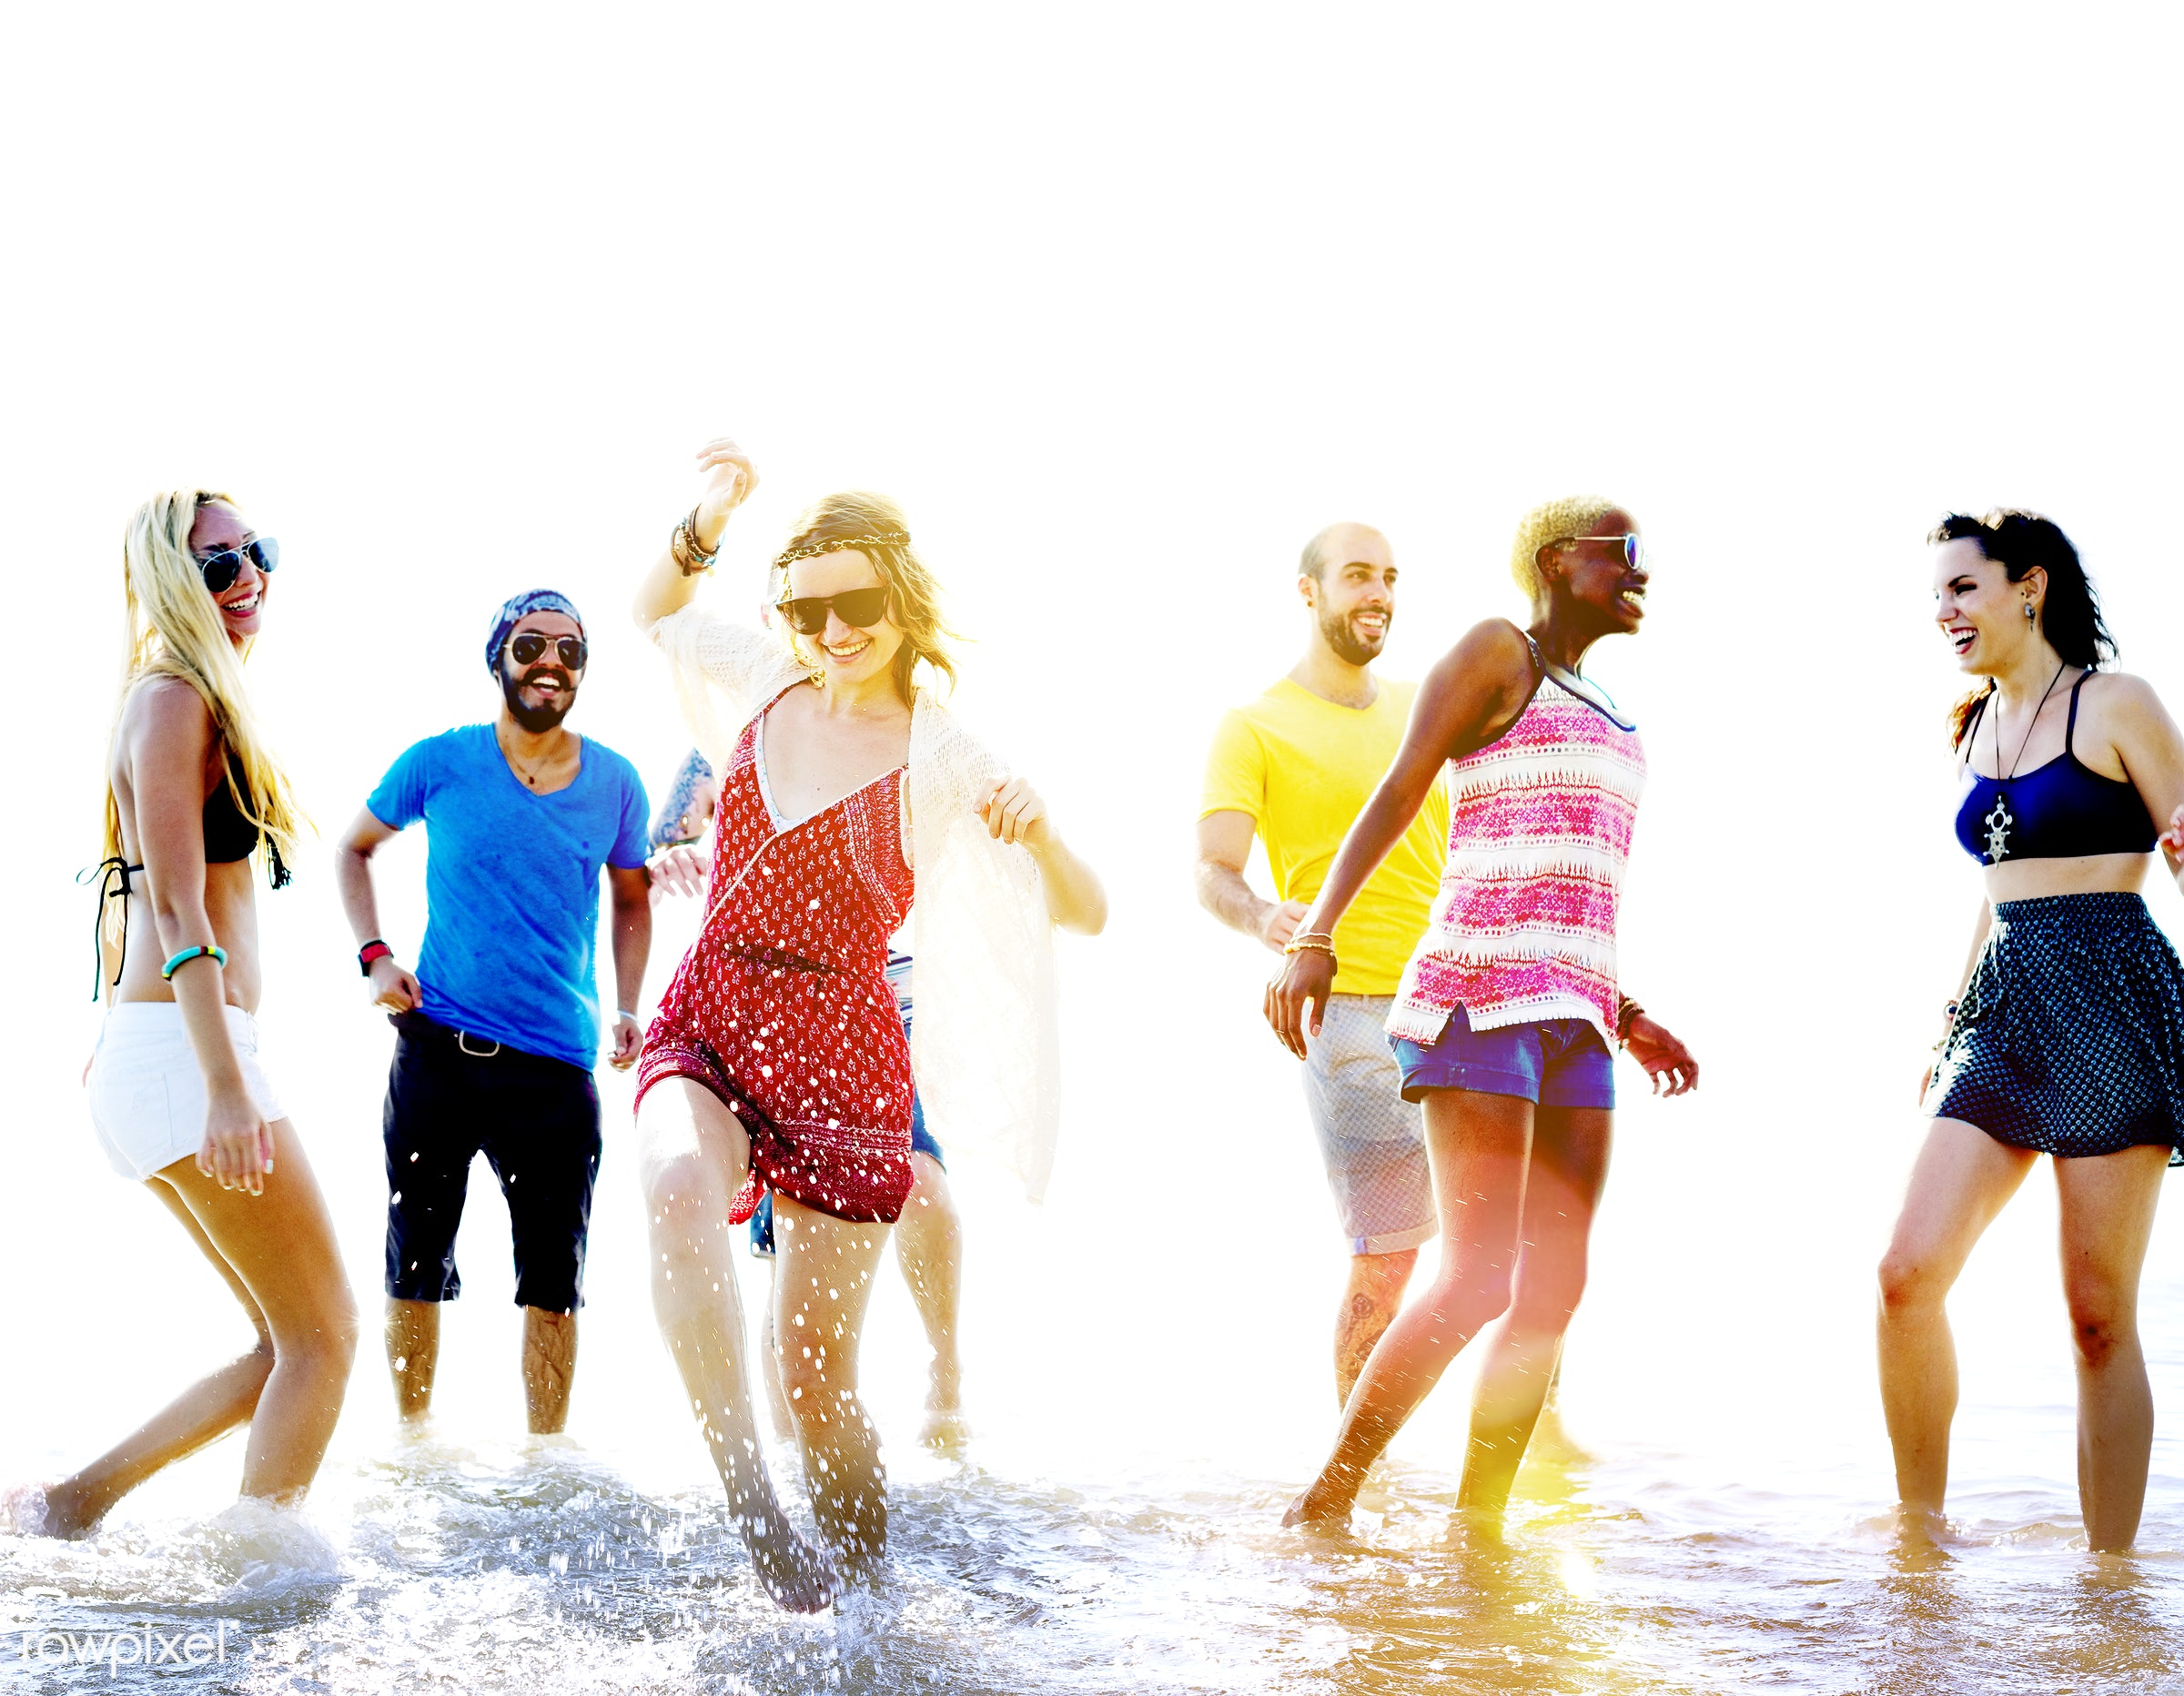 african descent, beach, bonding, cheerful, colorful, day, diverse, ecstatic, energy, enjoying, ethnicity, fashion, friends,...